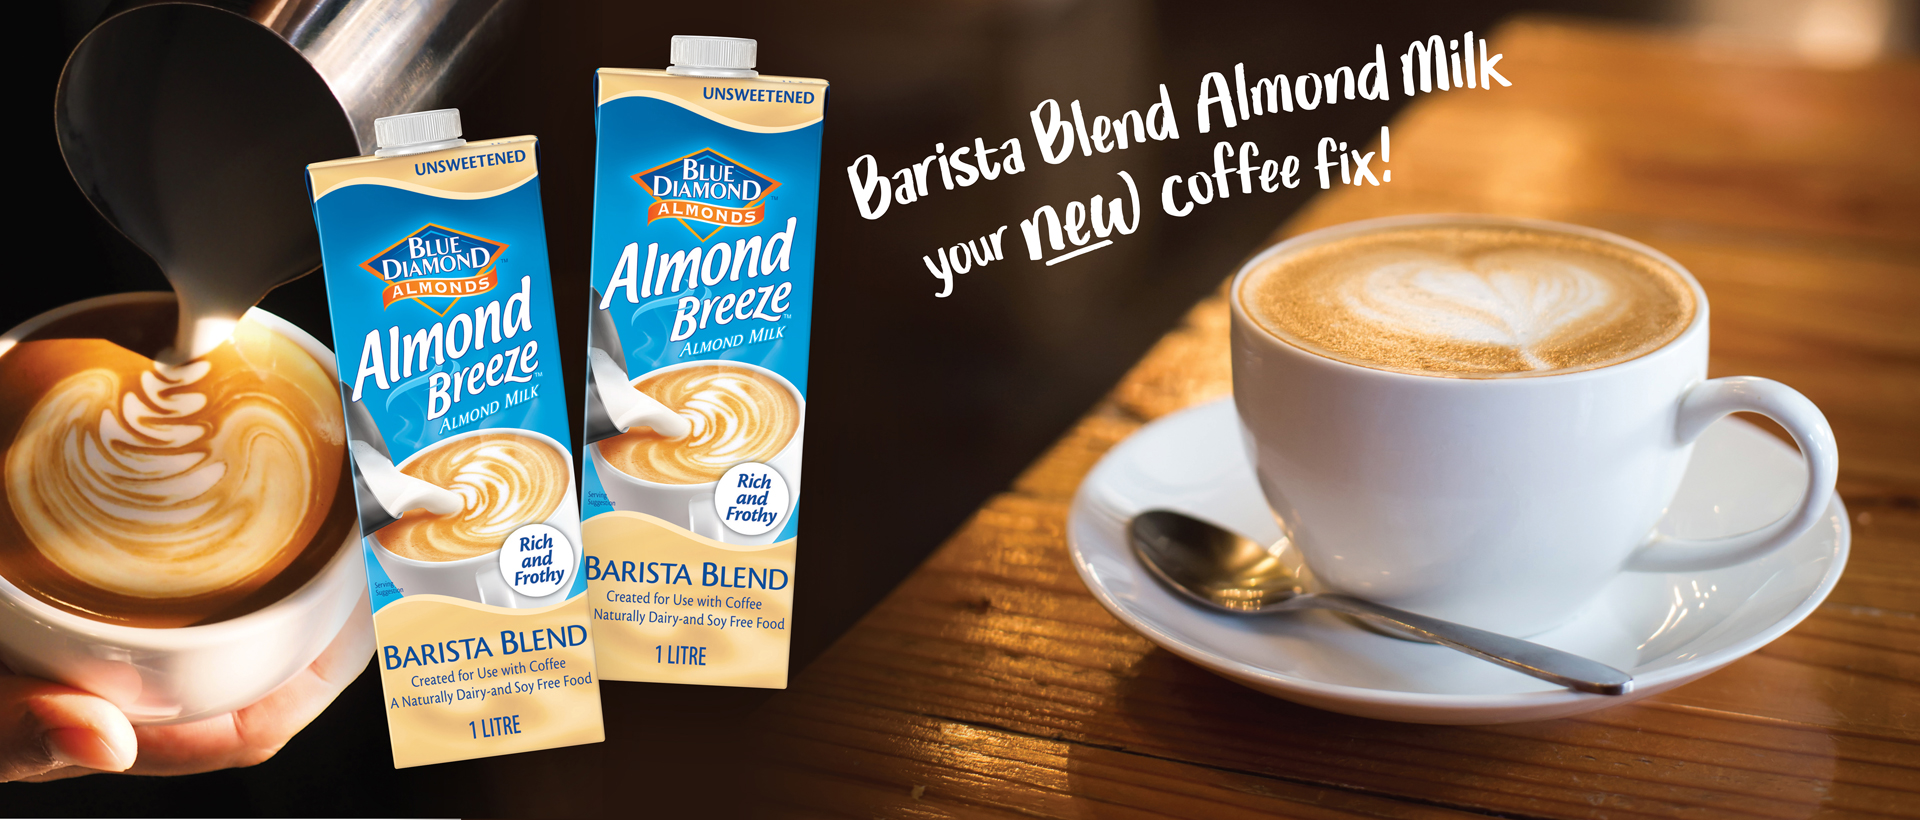 Almond Breeze Barista Blend. A coffee fix on the rise.